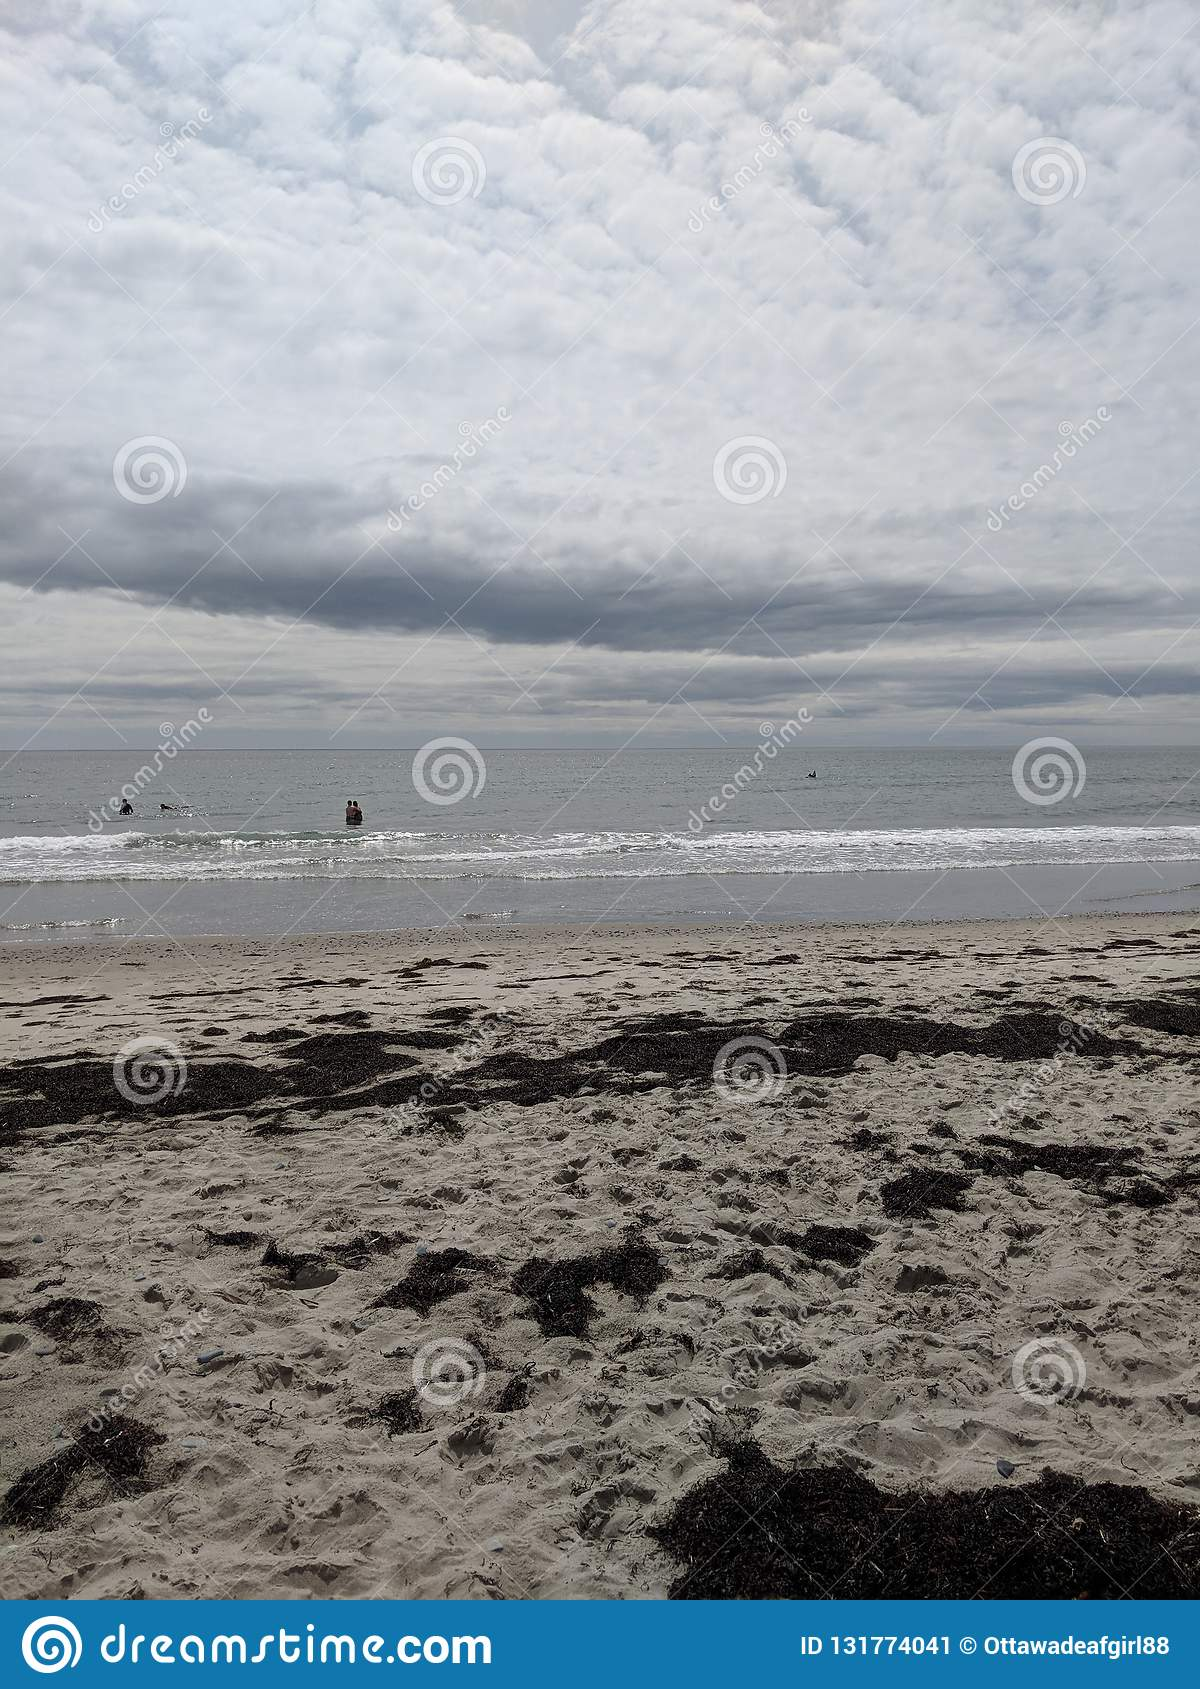 Martinique Beach In Nova Scotia Stock Image - Image of ocean